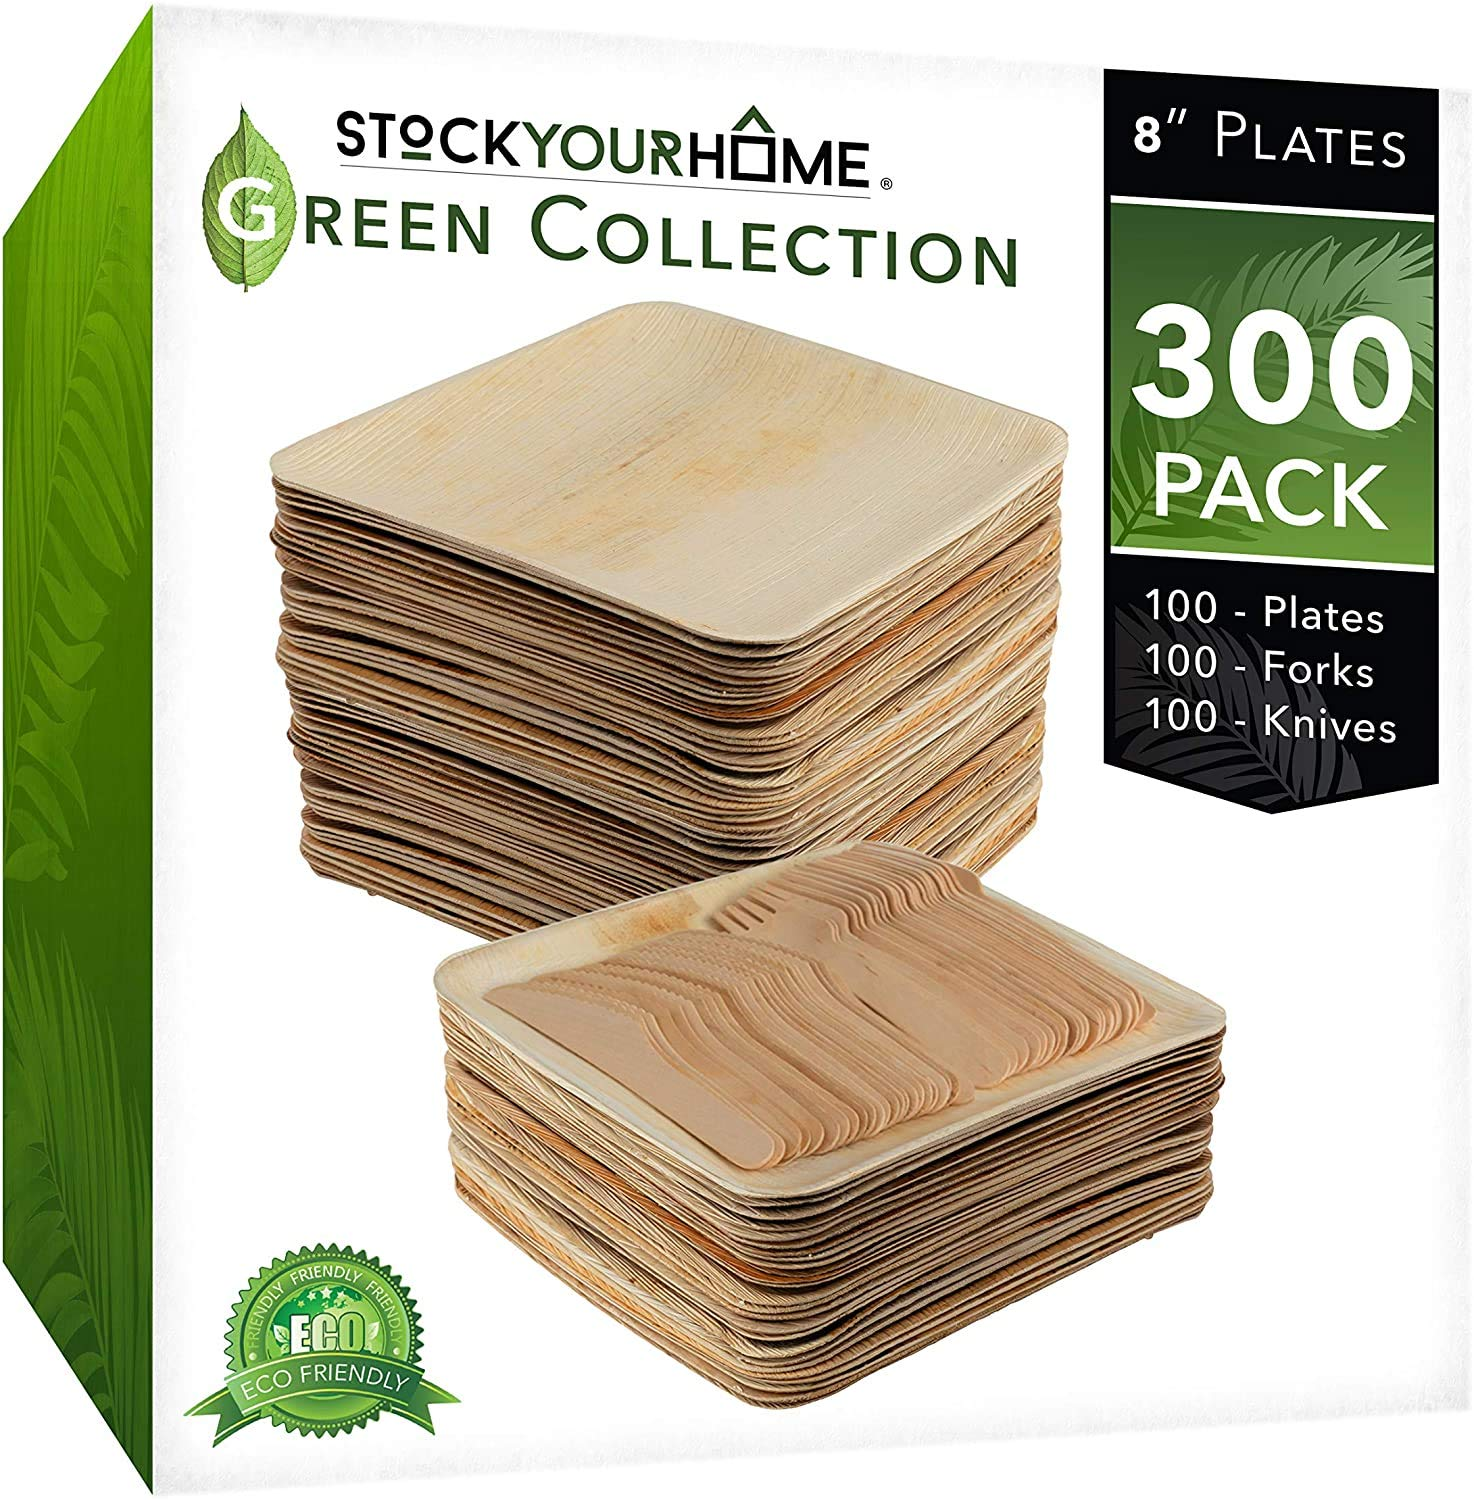 Stock Your Home Compostable Eco Friendly Bamboo Like Palm Leaf Plates and Cutlery Set, 100 Square 8 Inch Plates, 100 Wooden Forks, 100 Wooden Knives, 300 Pieces